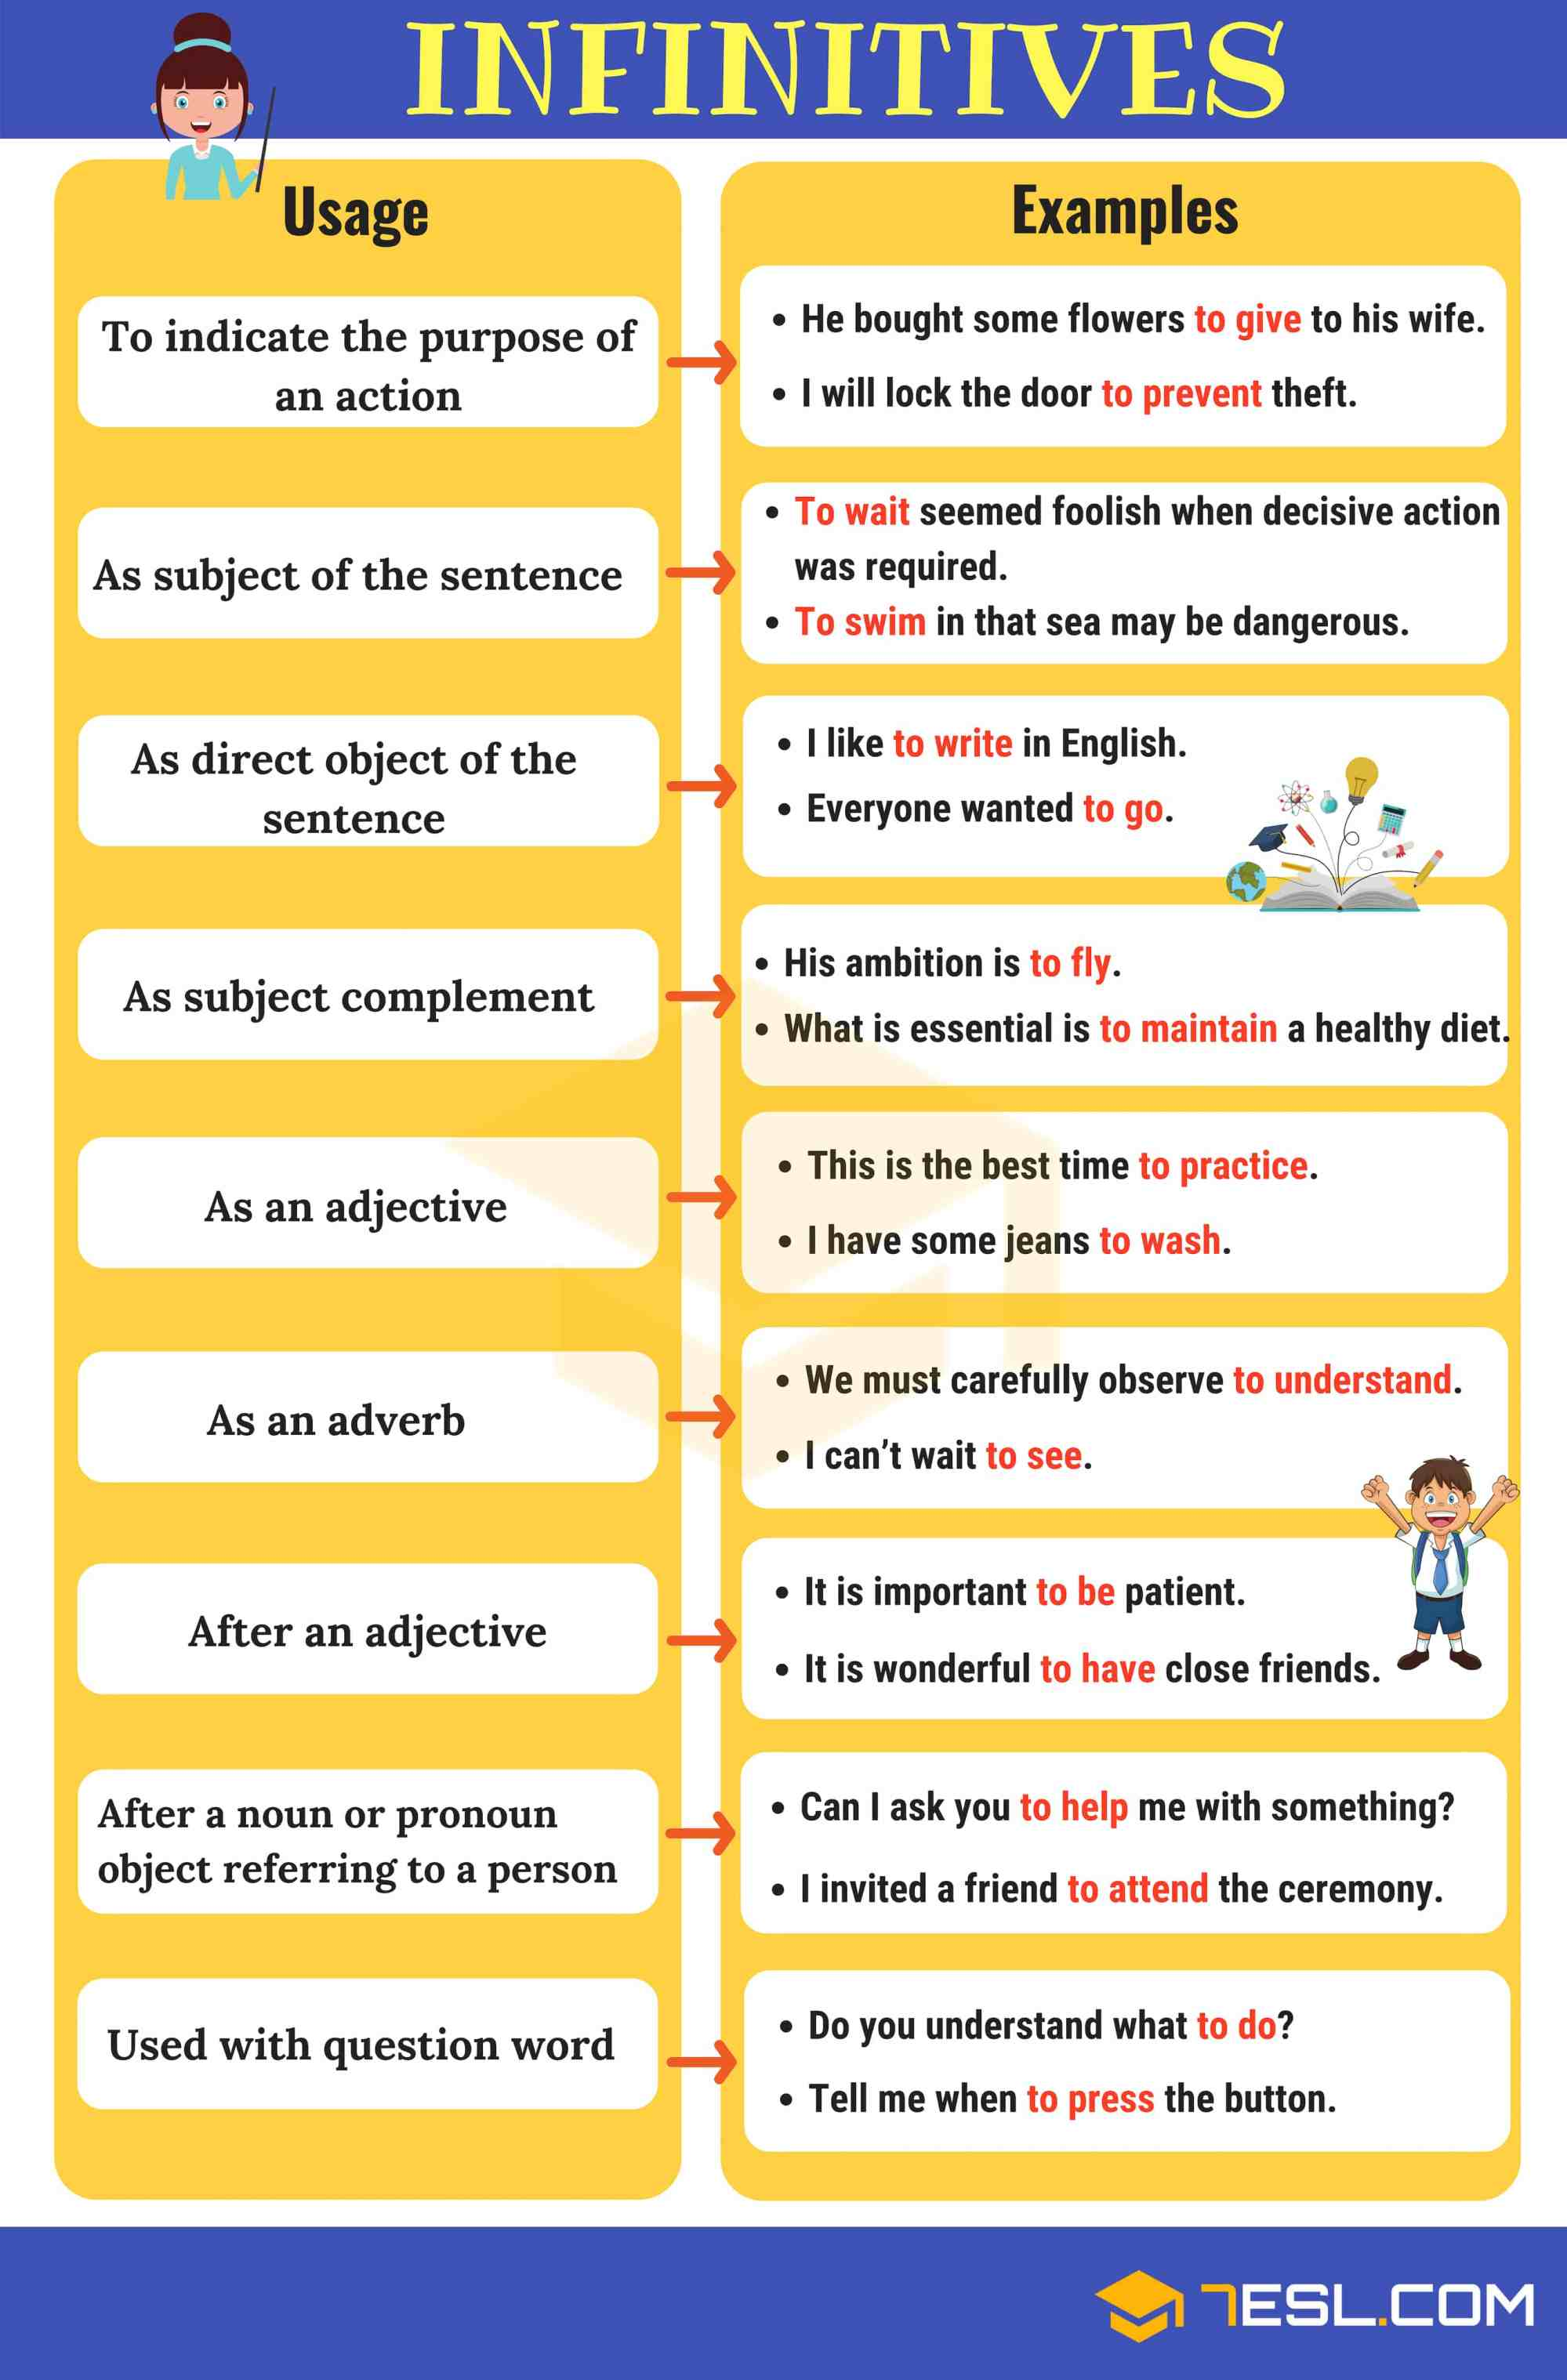 hight resolution of Infinitives: What Is An Infinitive? Functions \u0026 Examples • 7ESL